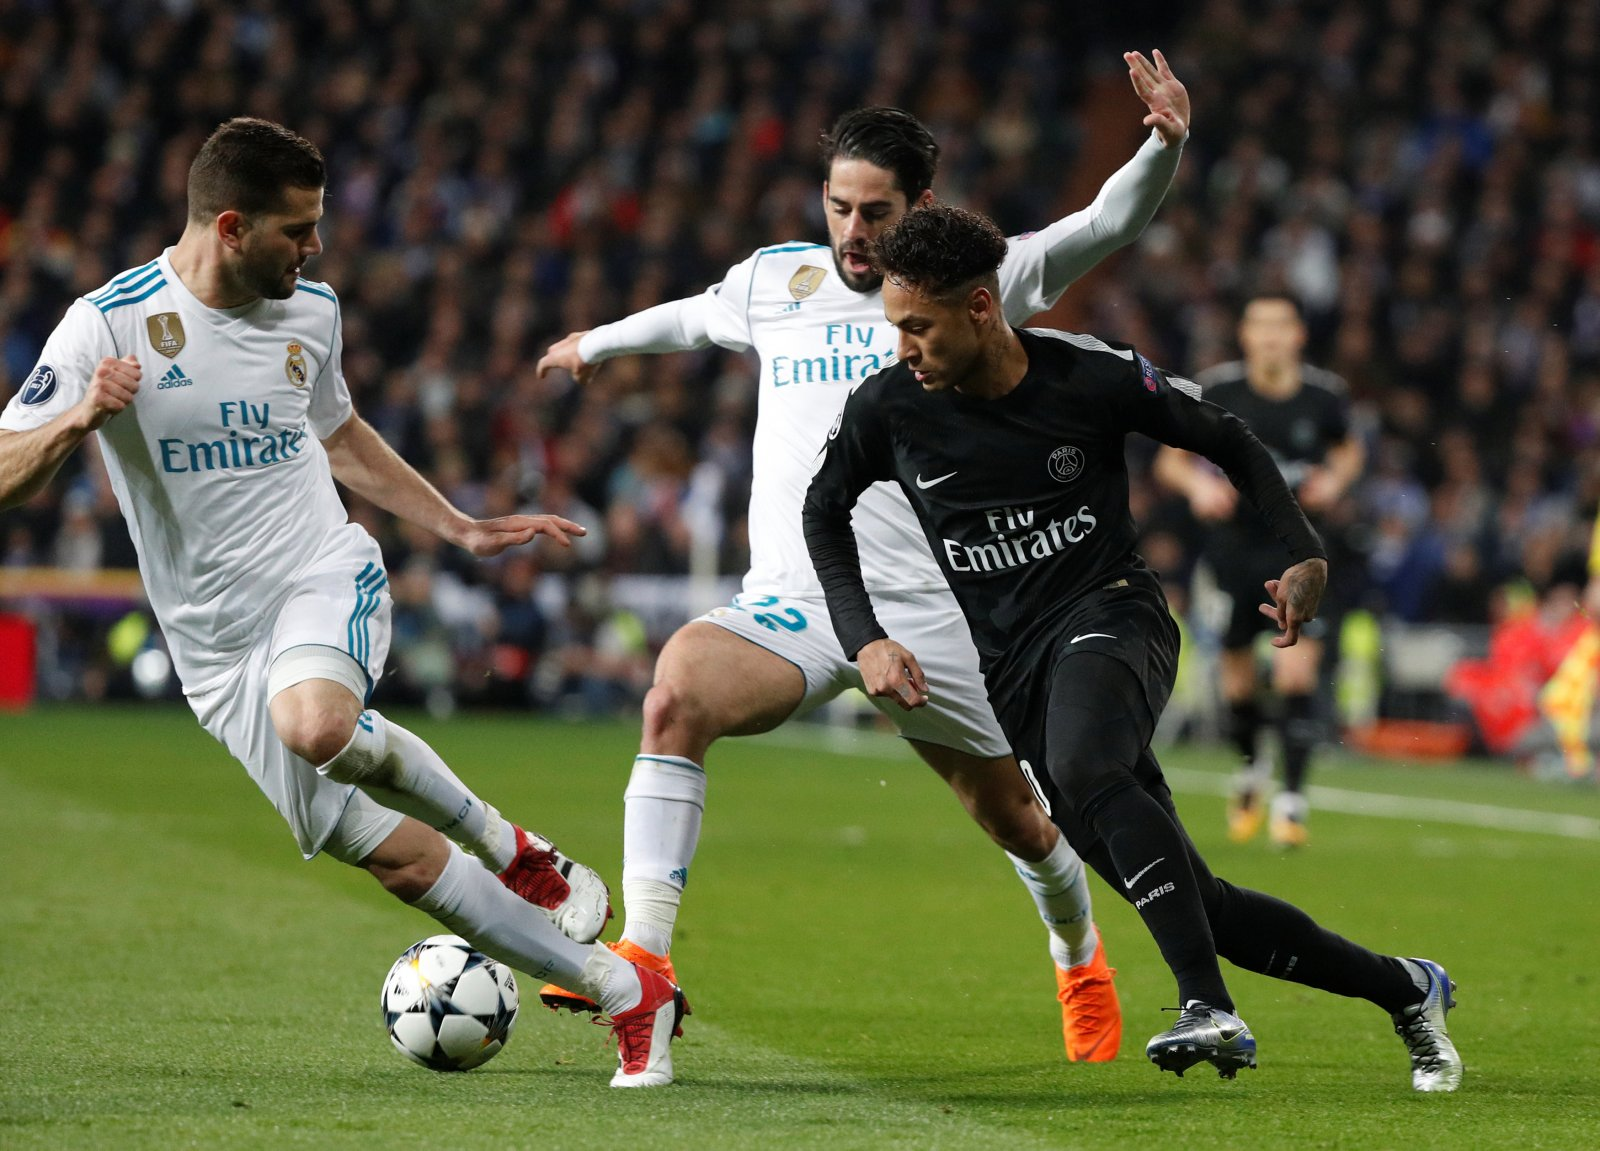 PSG's Neymar takes on Real Madrid in the Champions League